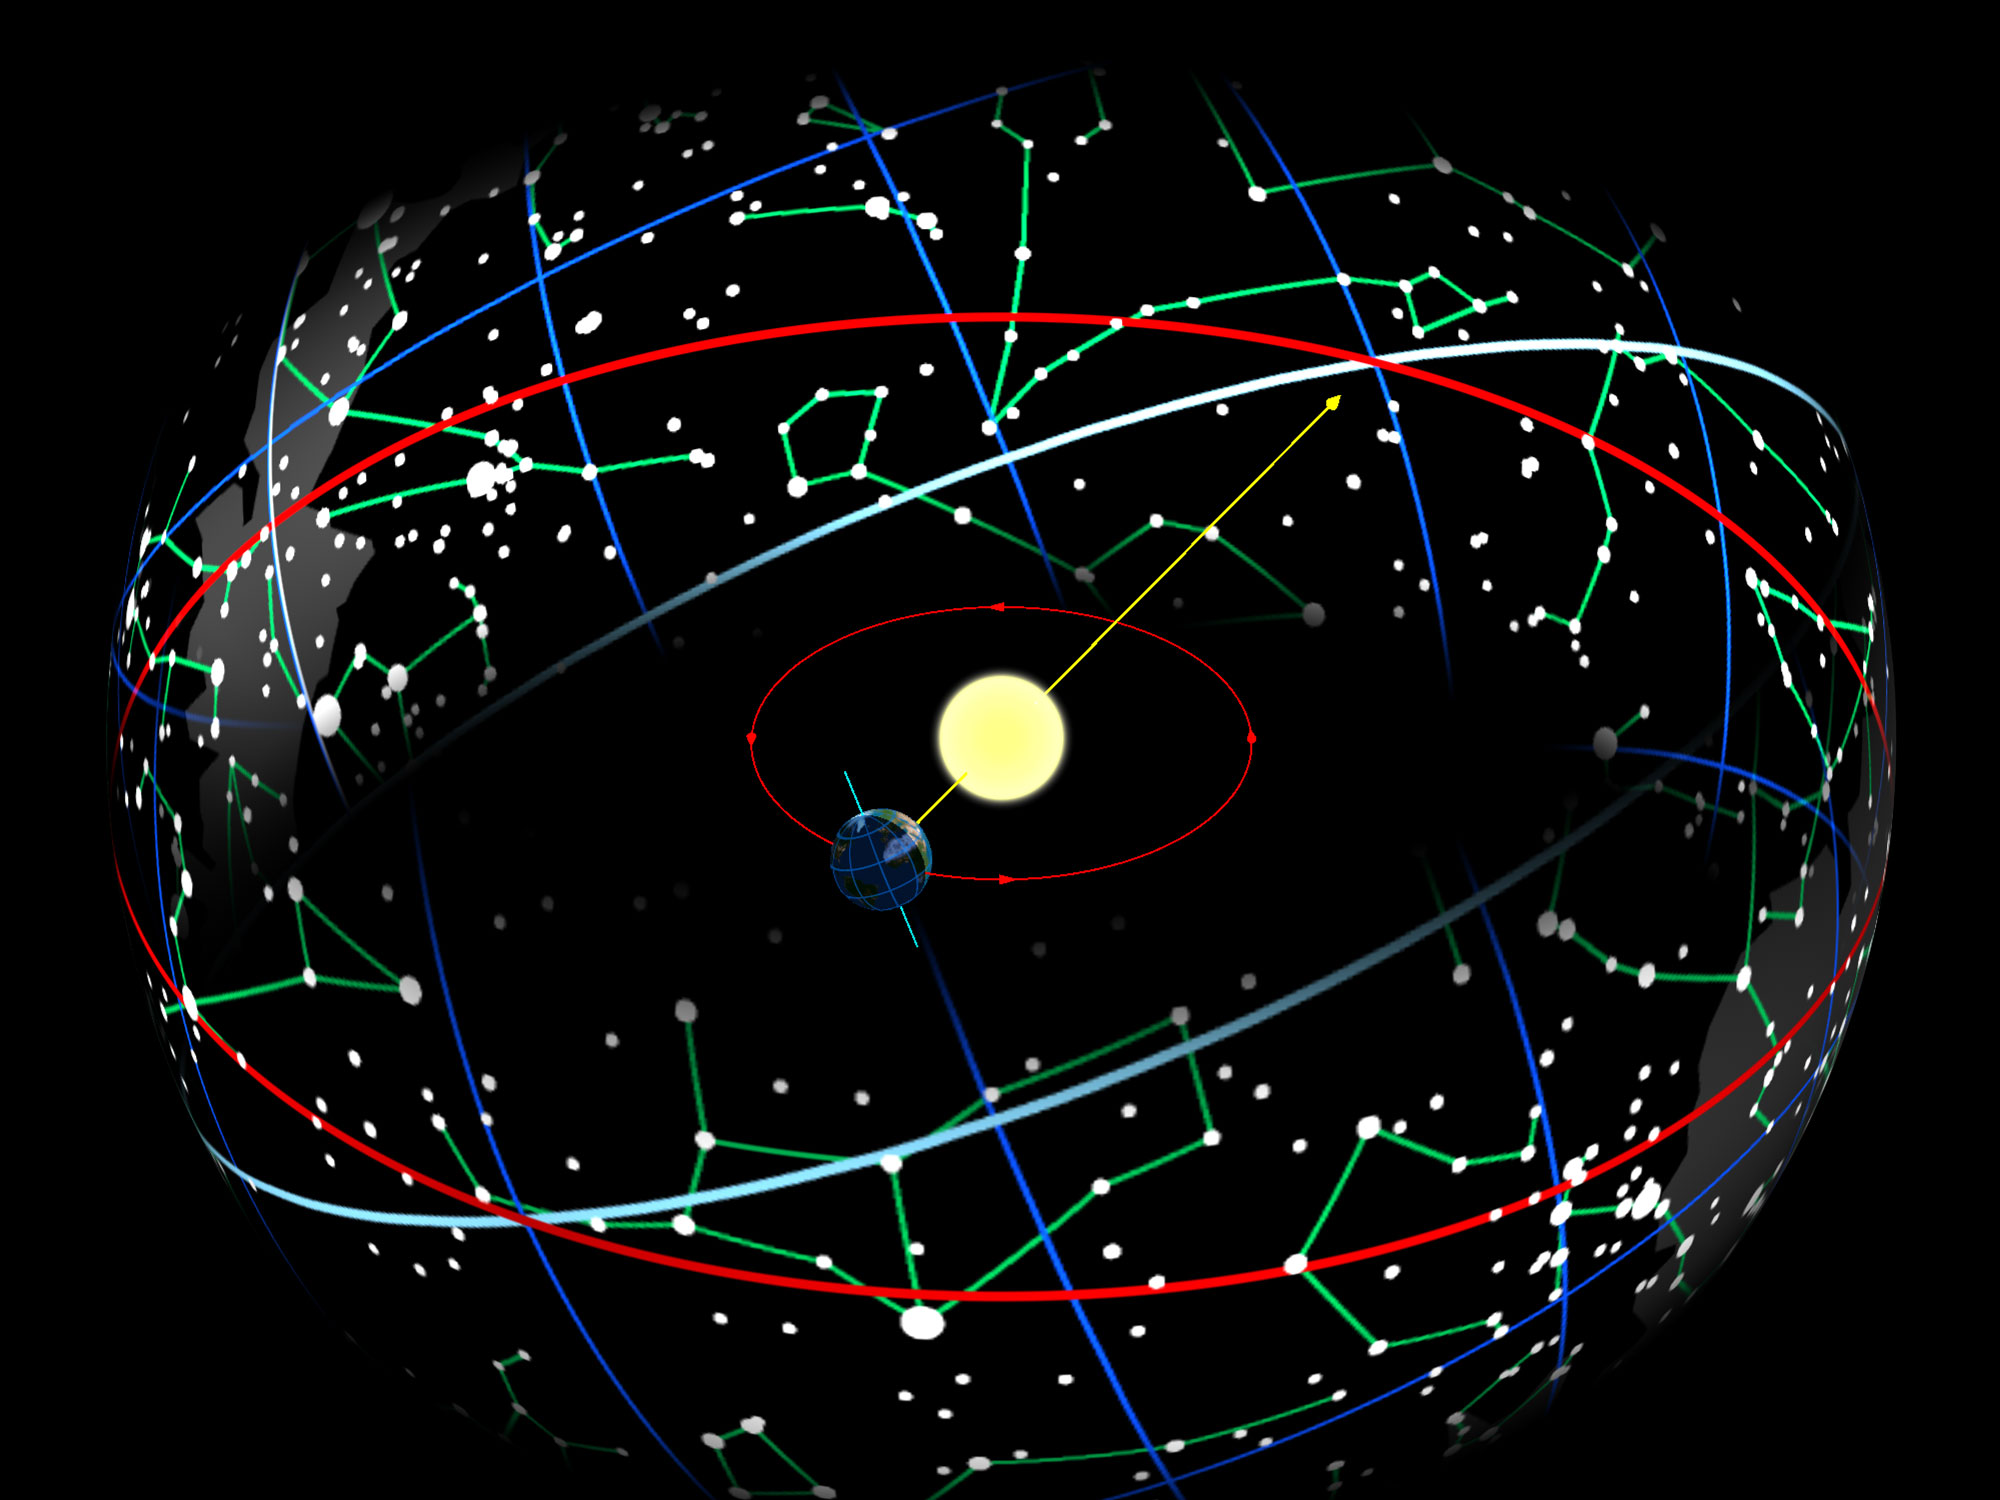 The Sun and the  Ecliptic, showing the Earth's orbit and position relative to the Sun.